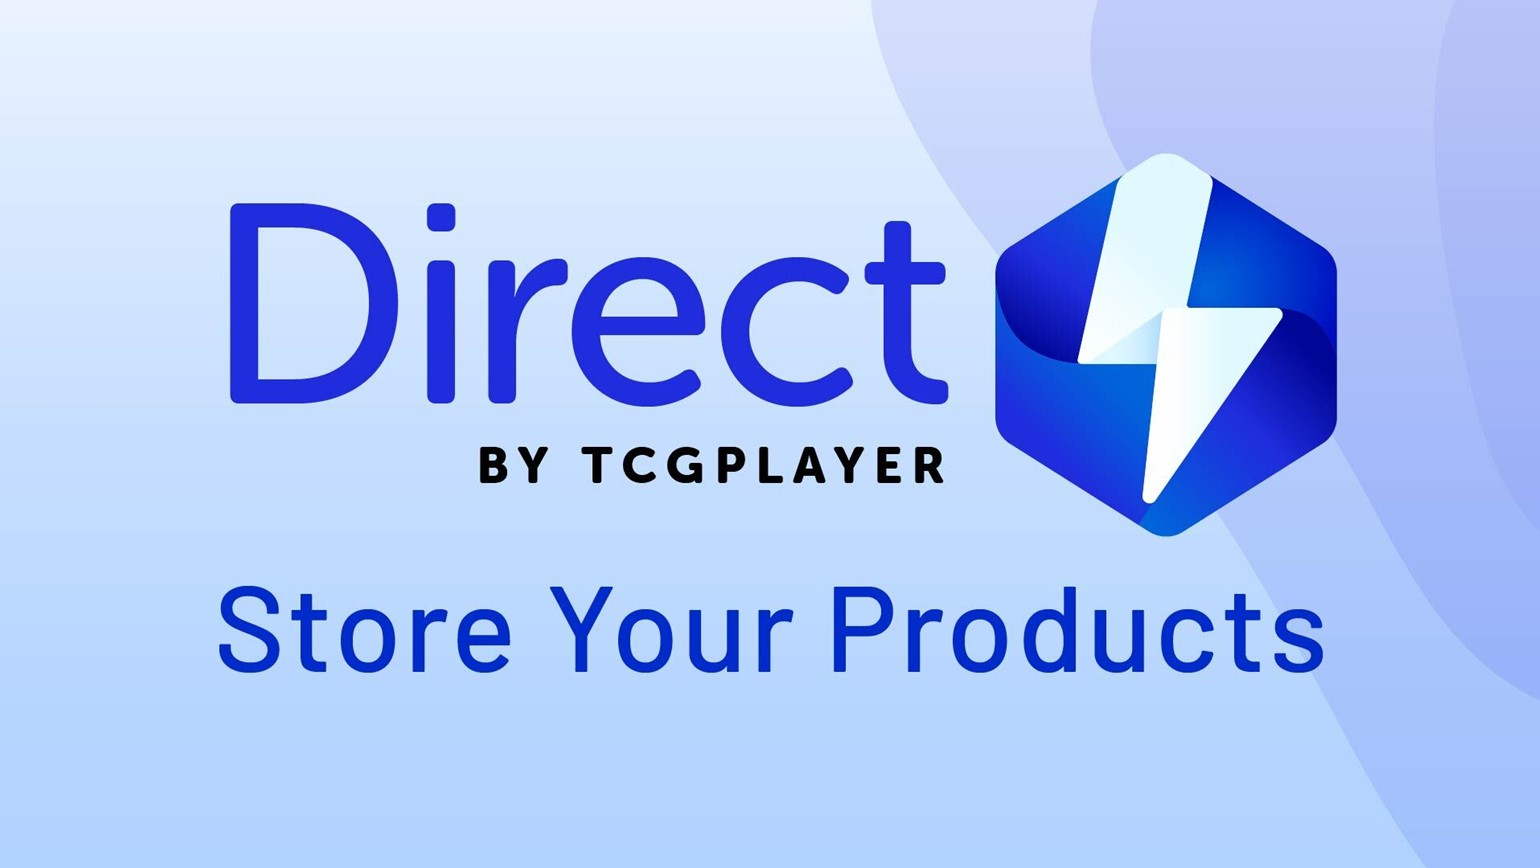 Direct by TCGplayer - Store Your Products